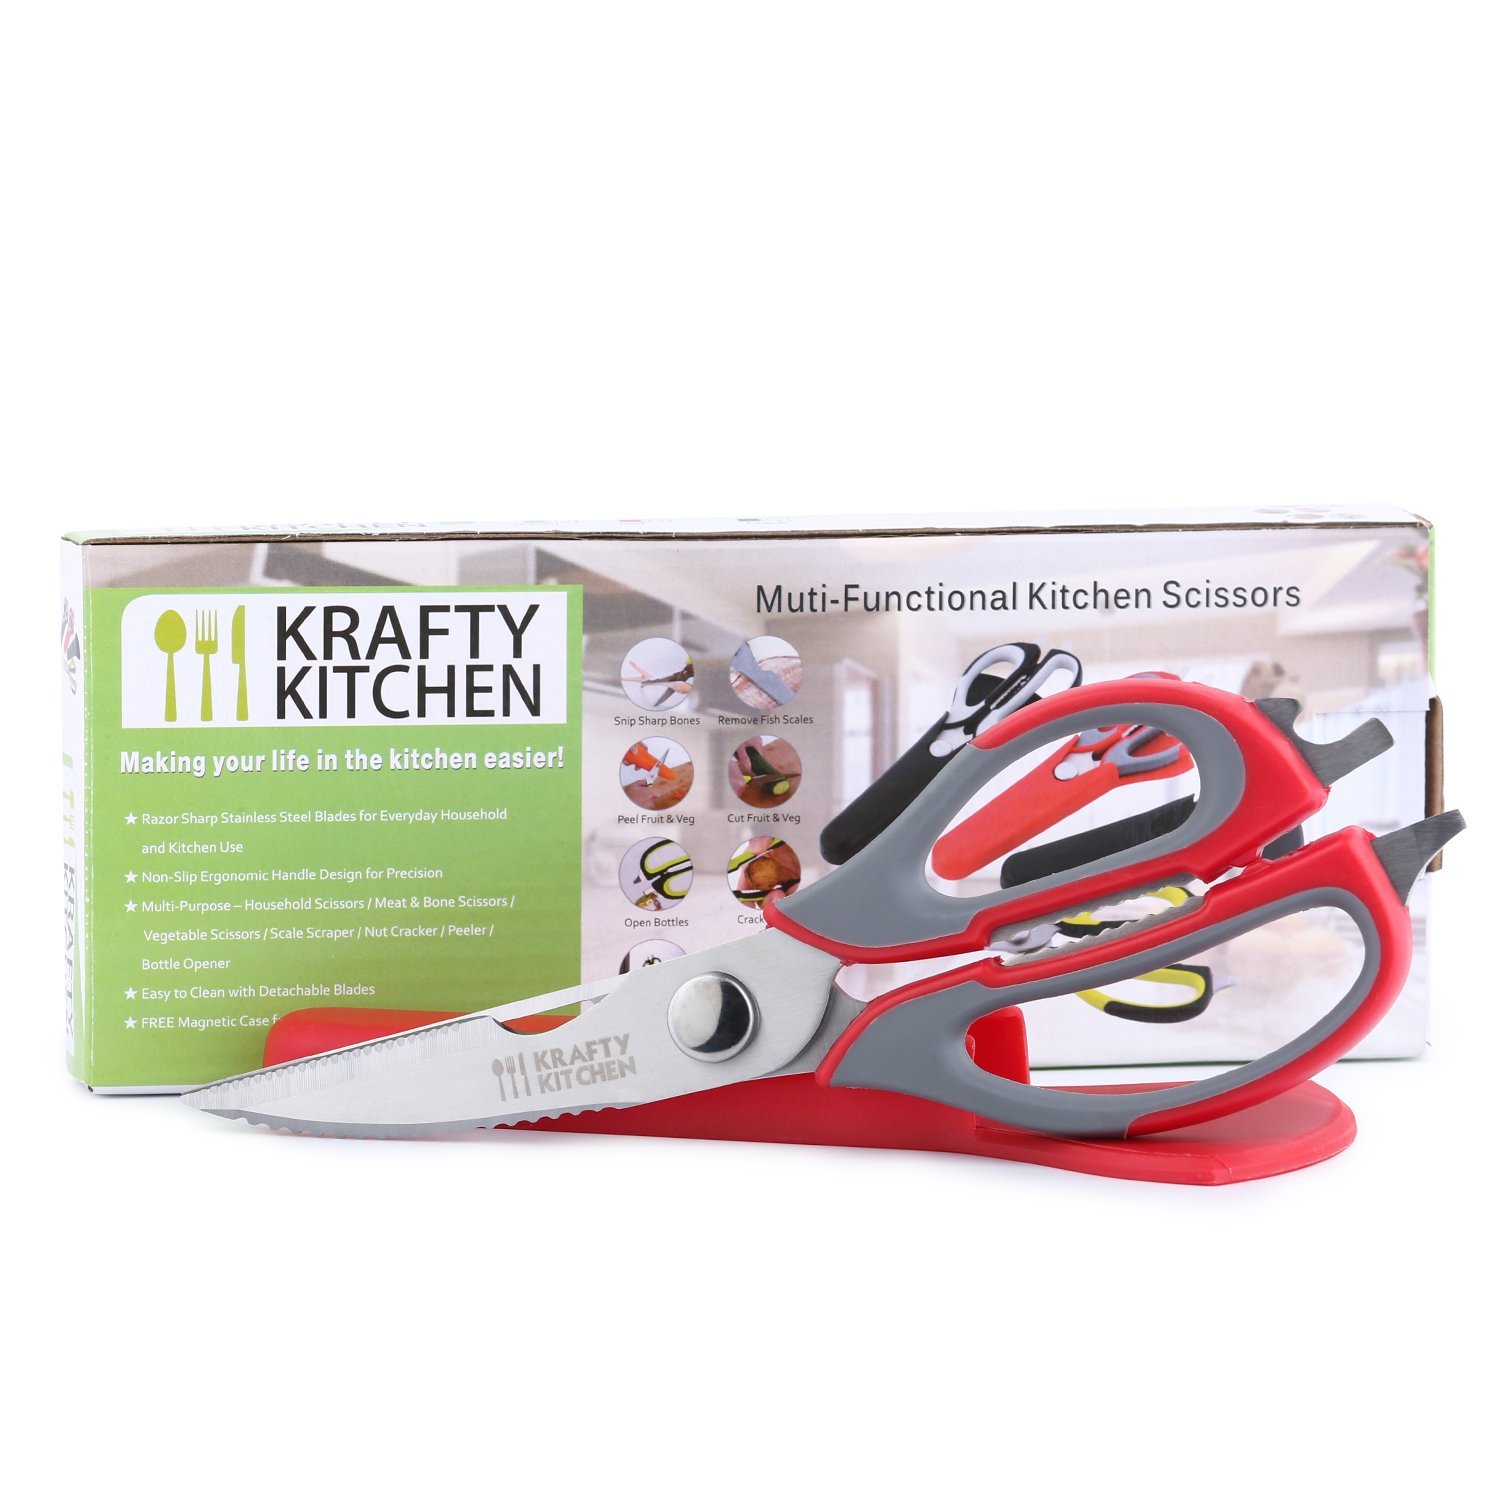 Cross Red Multifunctional Kitchen Scissors - Premium 7 in 1 Heavy Duty Kitchen Accessory - Top Stainless Steel Kitchen Shears W/ Firm-Grip Handles + Free Magnetic Holder for Easy Storage & Safety Cross Creation Products Ltd SYNCHKG120309